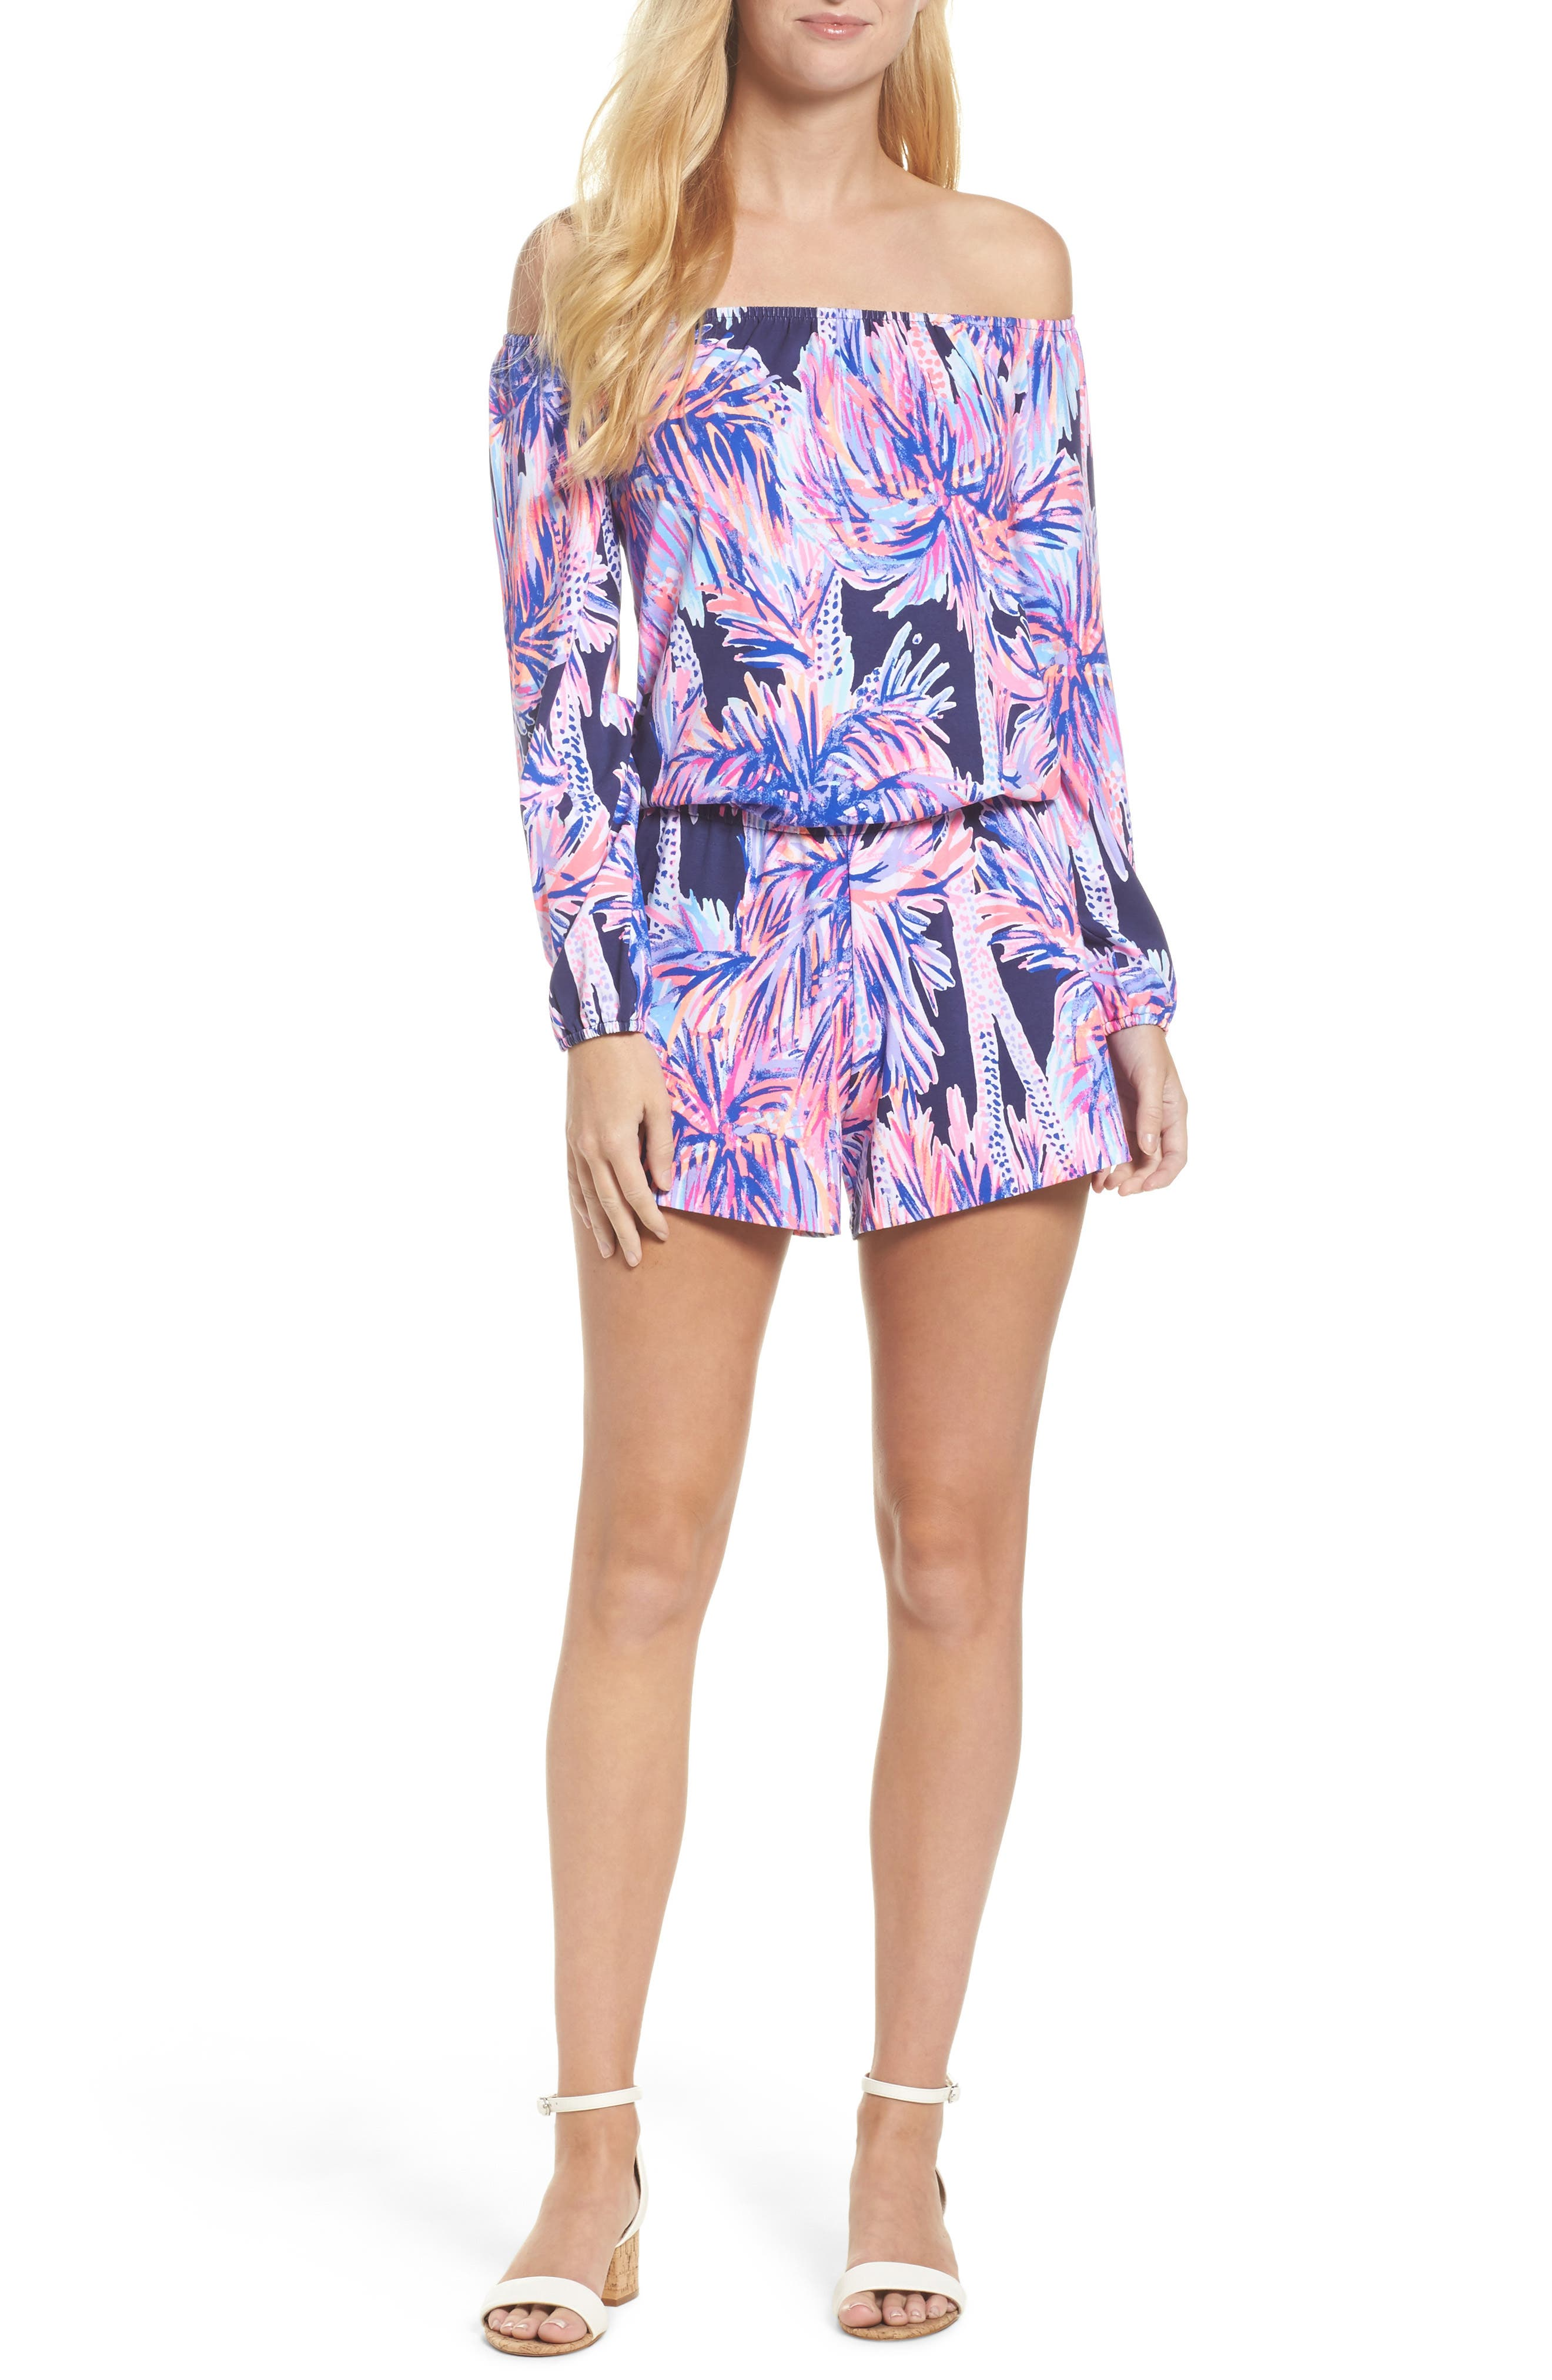 Lana Off the Shoulder Romper,                             Main thumbnail 1, color,                             Bright Navy Palms Up